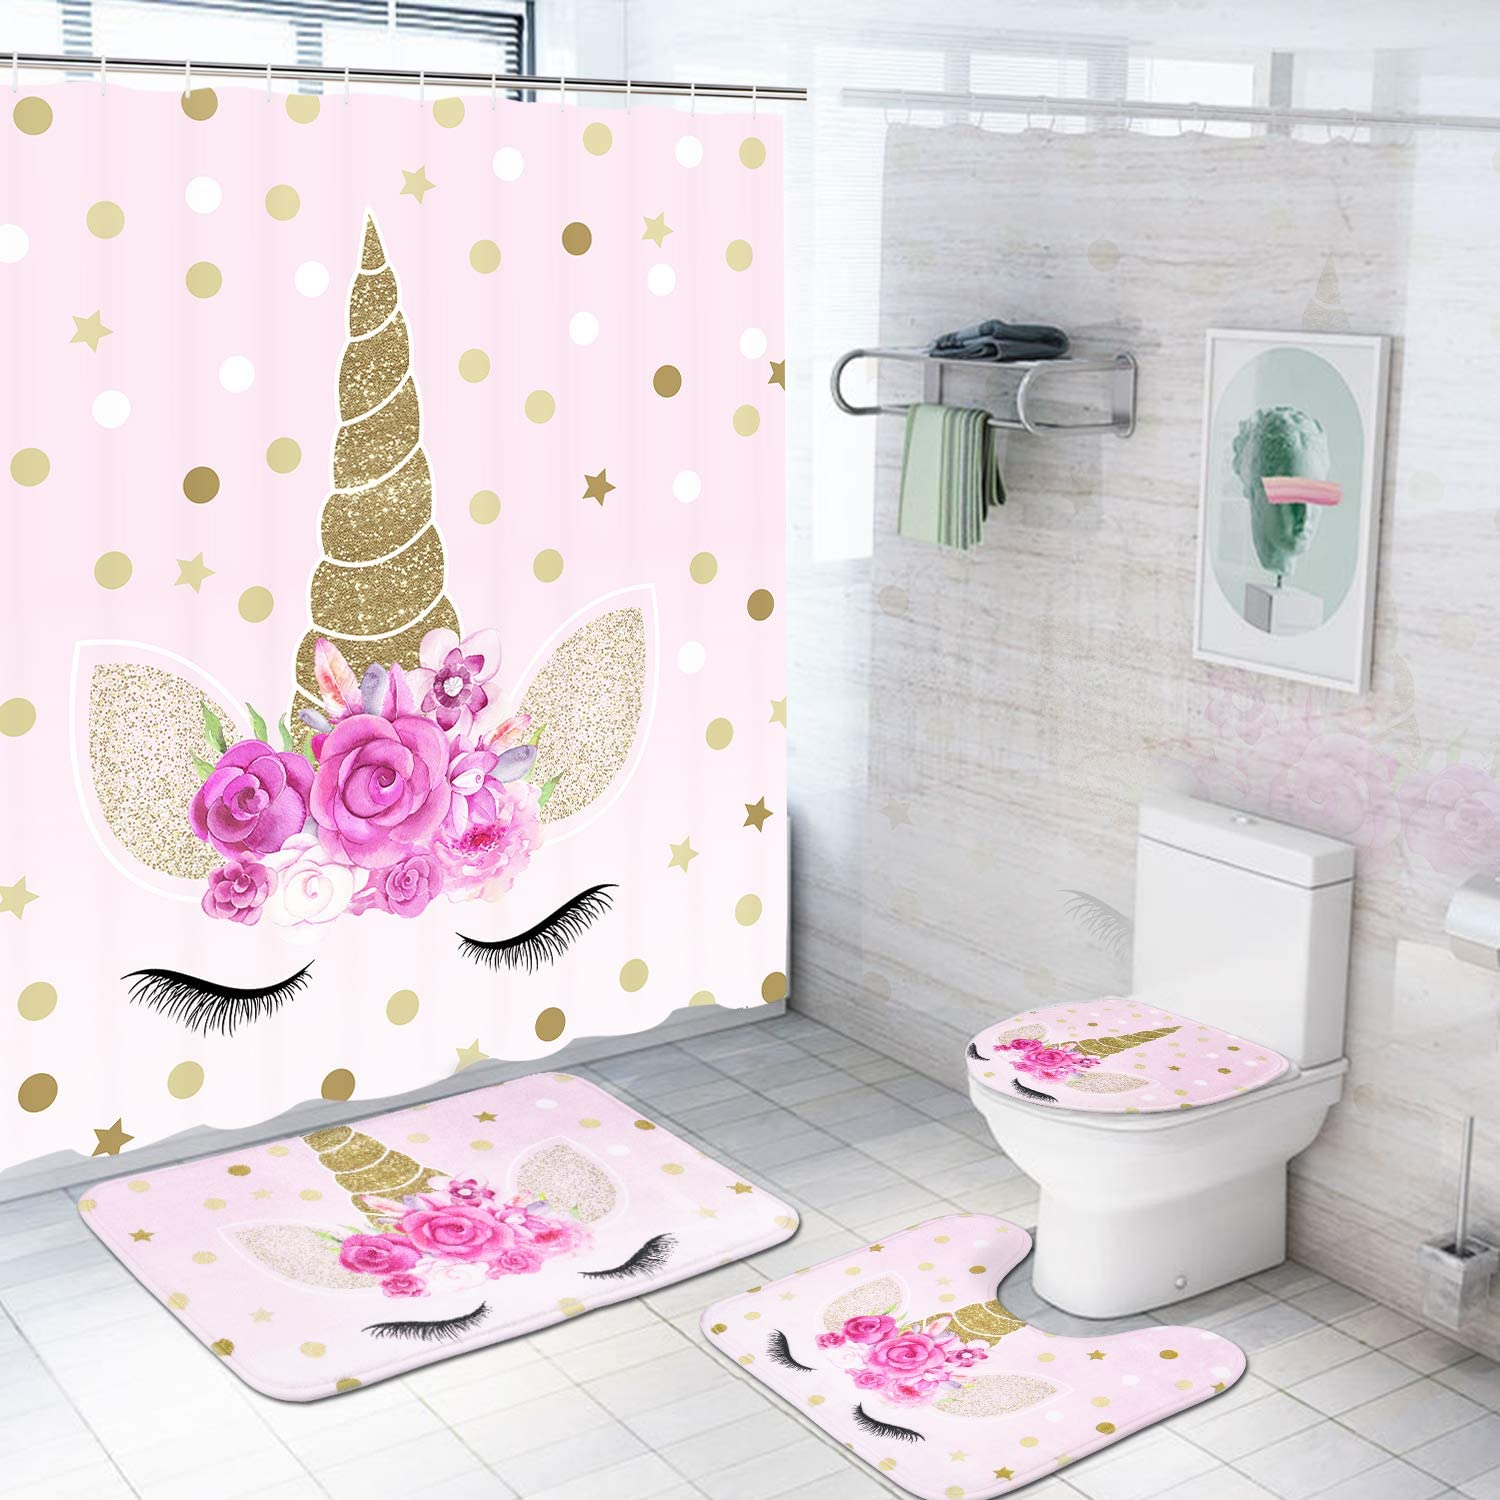 Romeooera 4 Piece Unicorn Shower Curtain with Free shipping on posting reviews Slip New mail order Rugs Non Sets